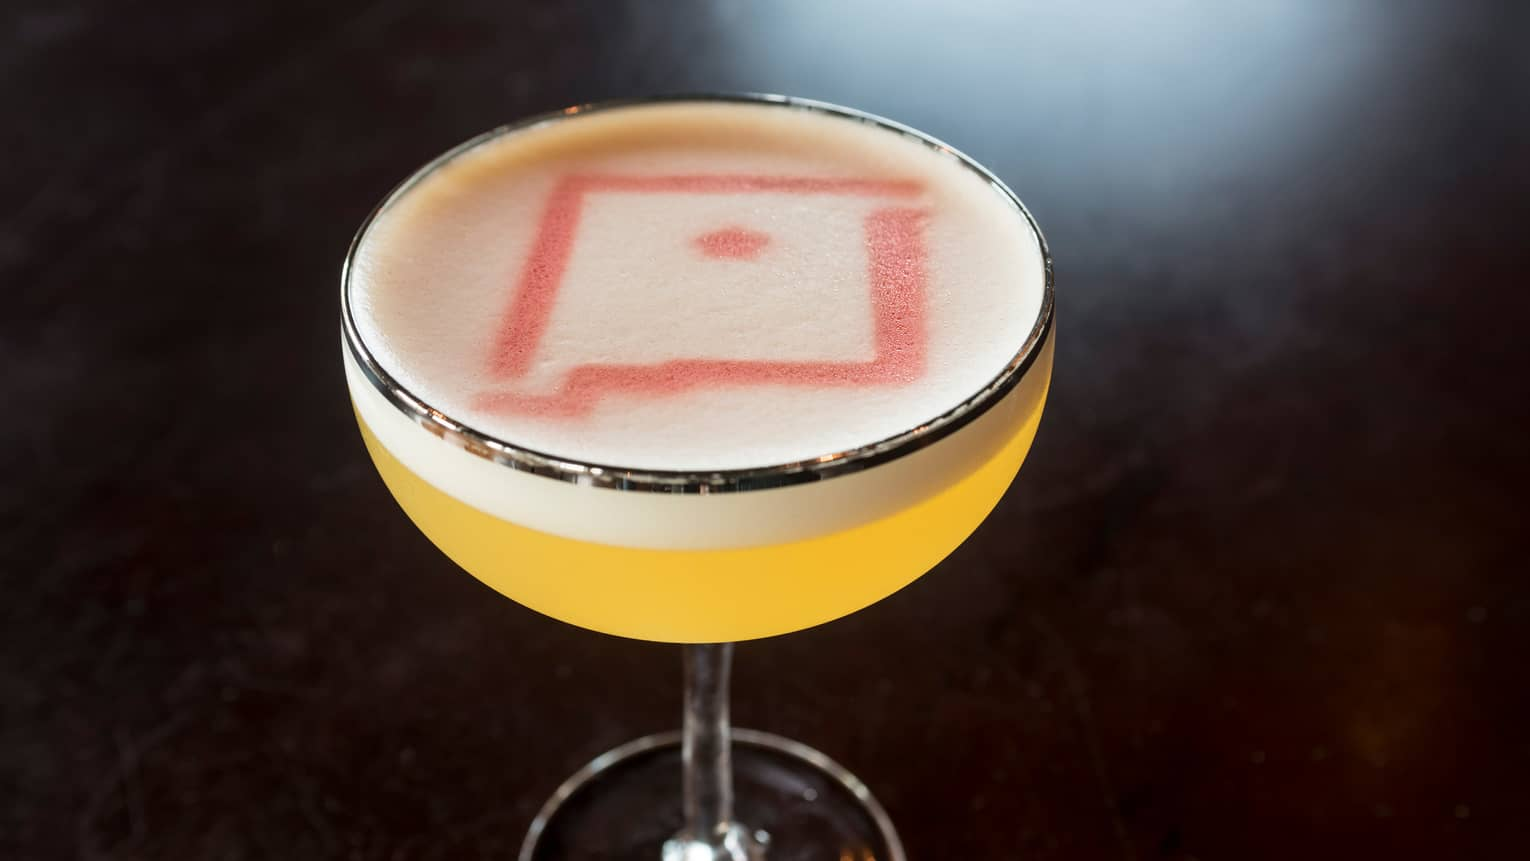 Yellow cocktail in glass topped with foam, red design